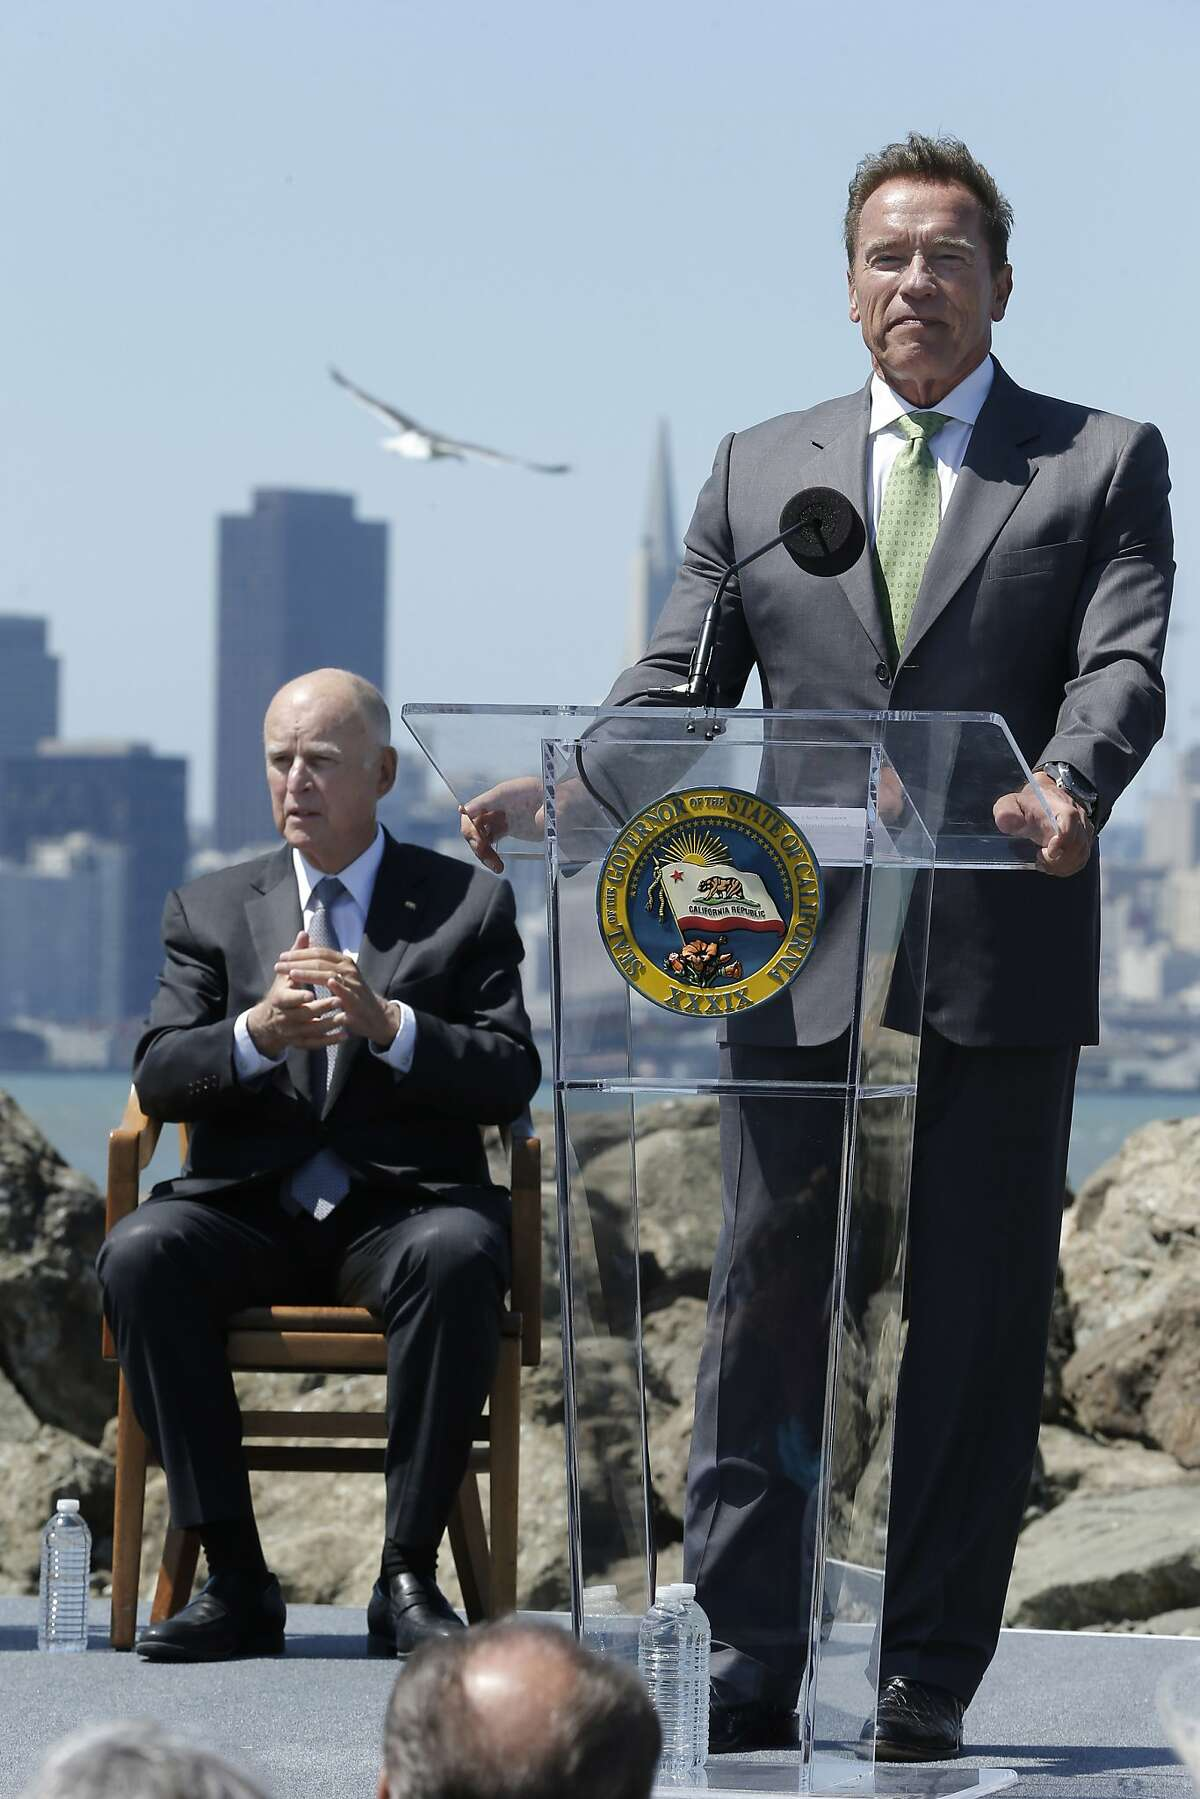 Former California Gov. Arnold Schwarzenegger gives his remarks during a signing ceremony at Treasure Island on Tuesday, July 25, 2017, in San Francisco, Calif. Gov. Jerry Brown (seen in the background) signed AB 398, a bill extending California's cap-and-trade system. He signed it on the same spot where former California Gov. Arnold Schwarzenegger signed the state's landmark 2006 climate change law, AB 32, which led to the creation of the cap-and-trade system.